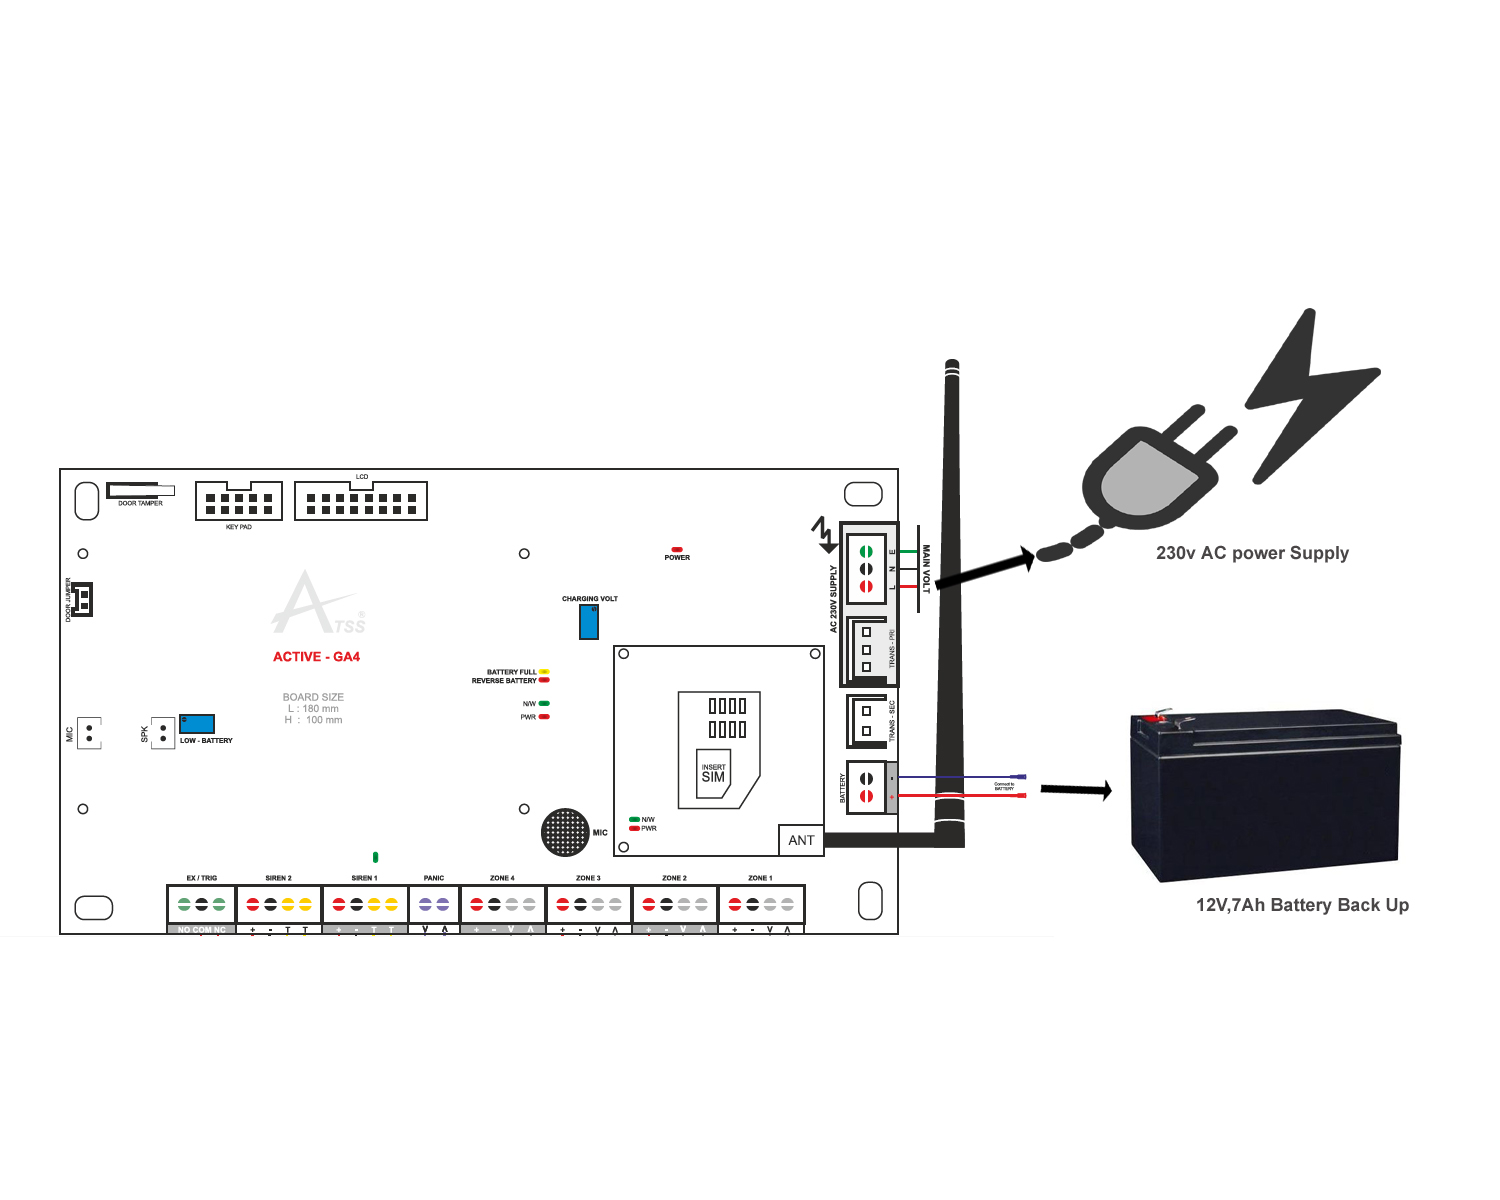 Intrusion Alarm System Power Supply